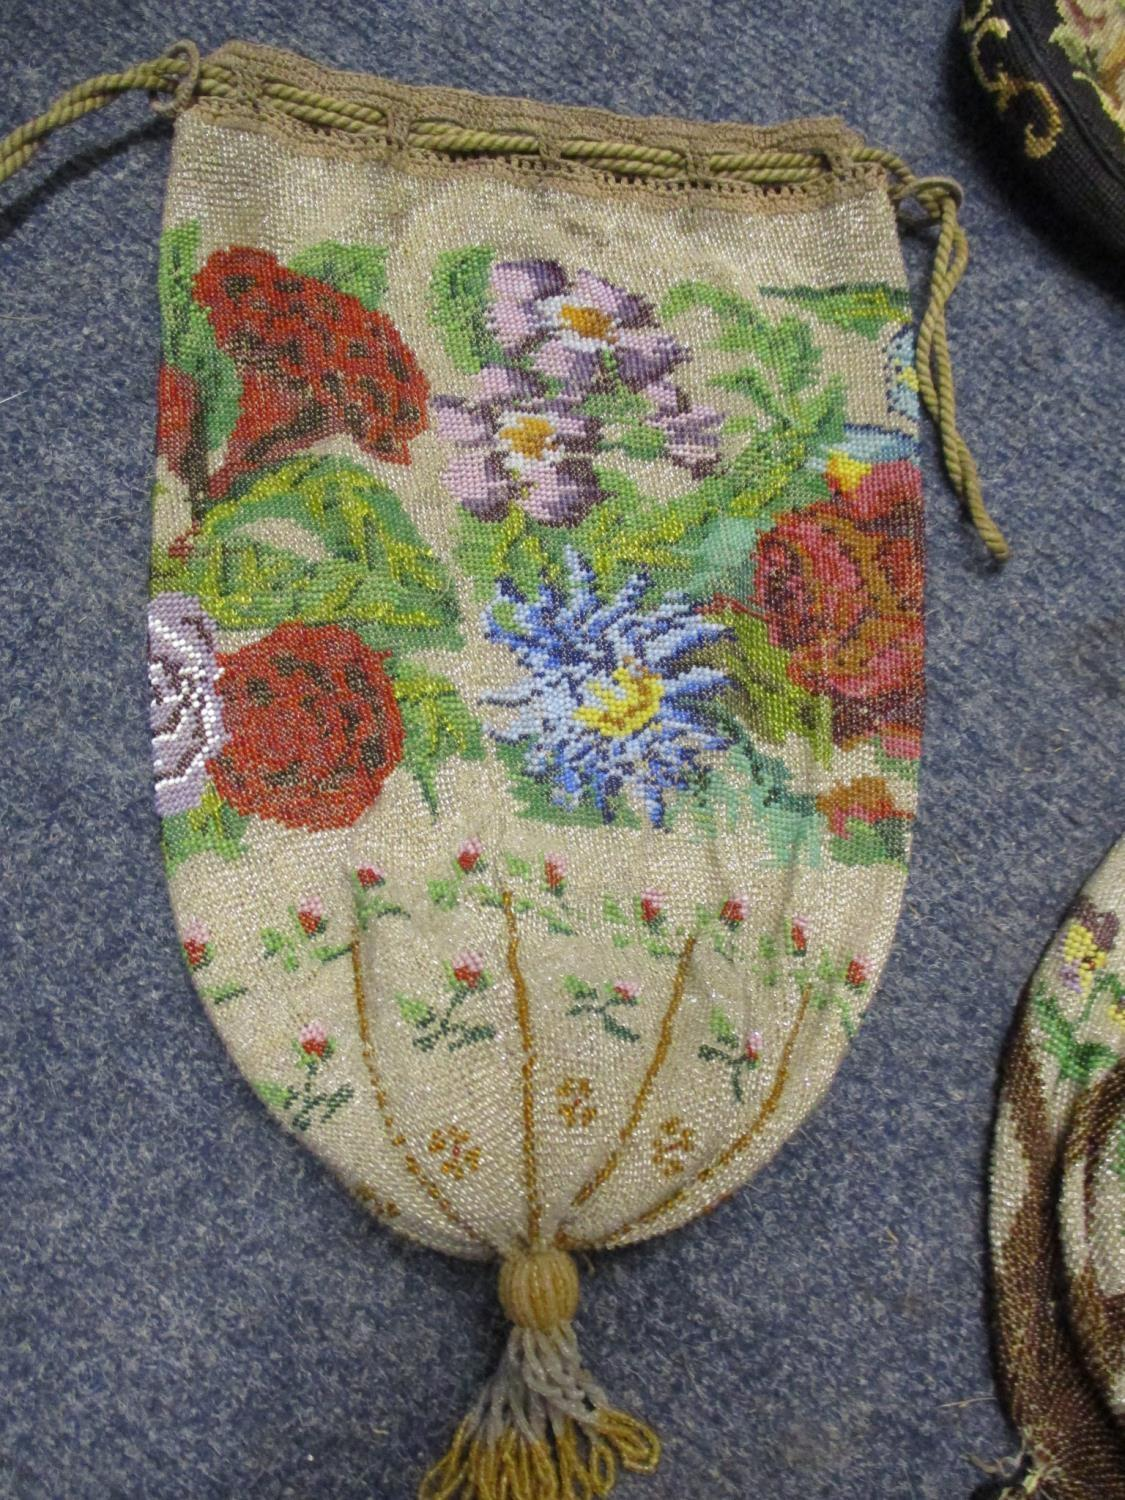 Two mid 20th century oriental style parasols depicting tulips, together with an early 20th century - Image 4 of 4